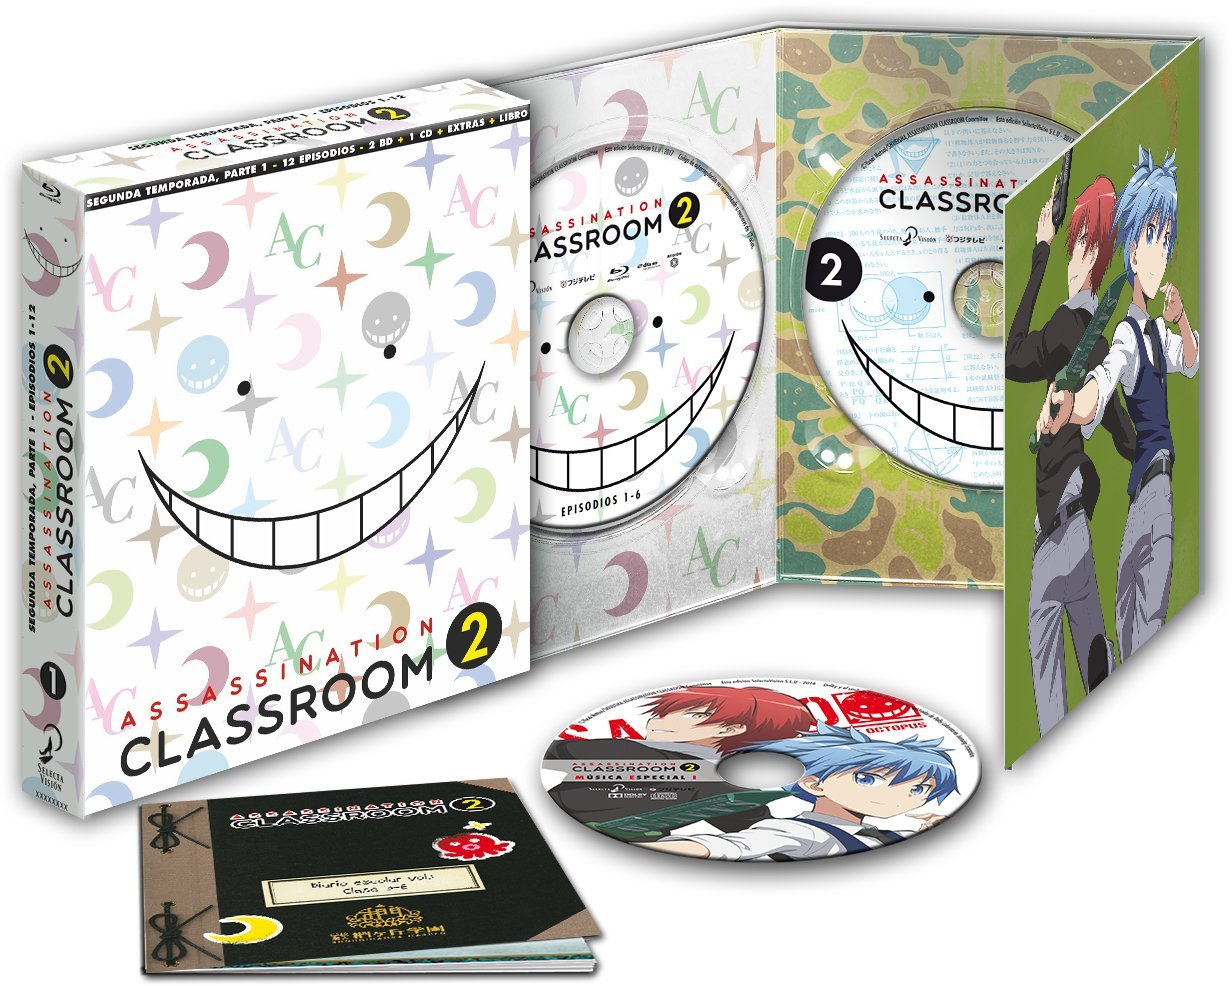 Assassination Classroom, Temporada 2 - Parte 1 (First Print Edition)